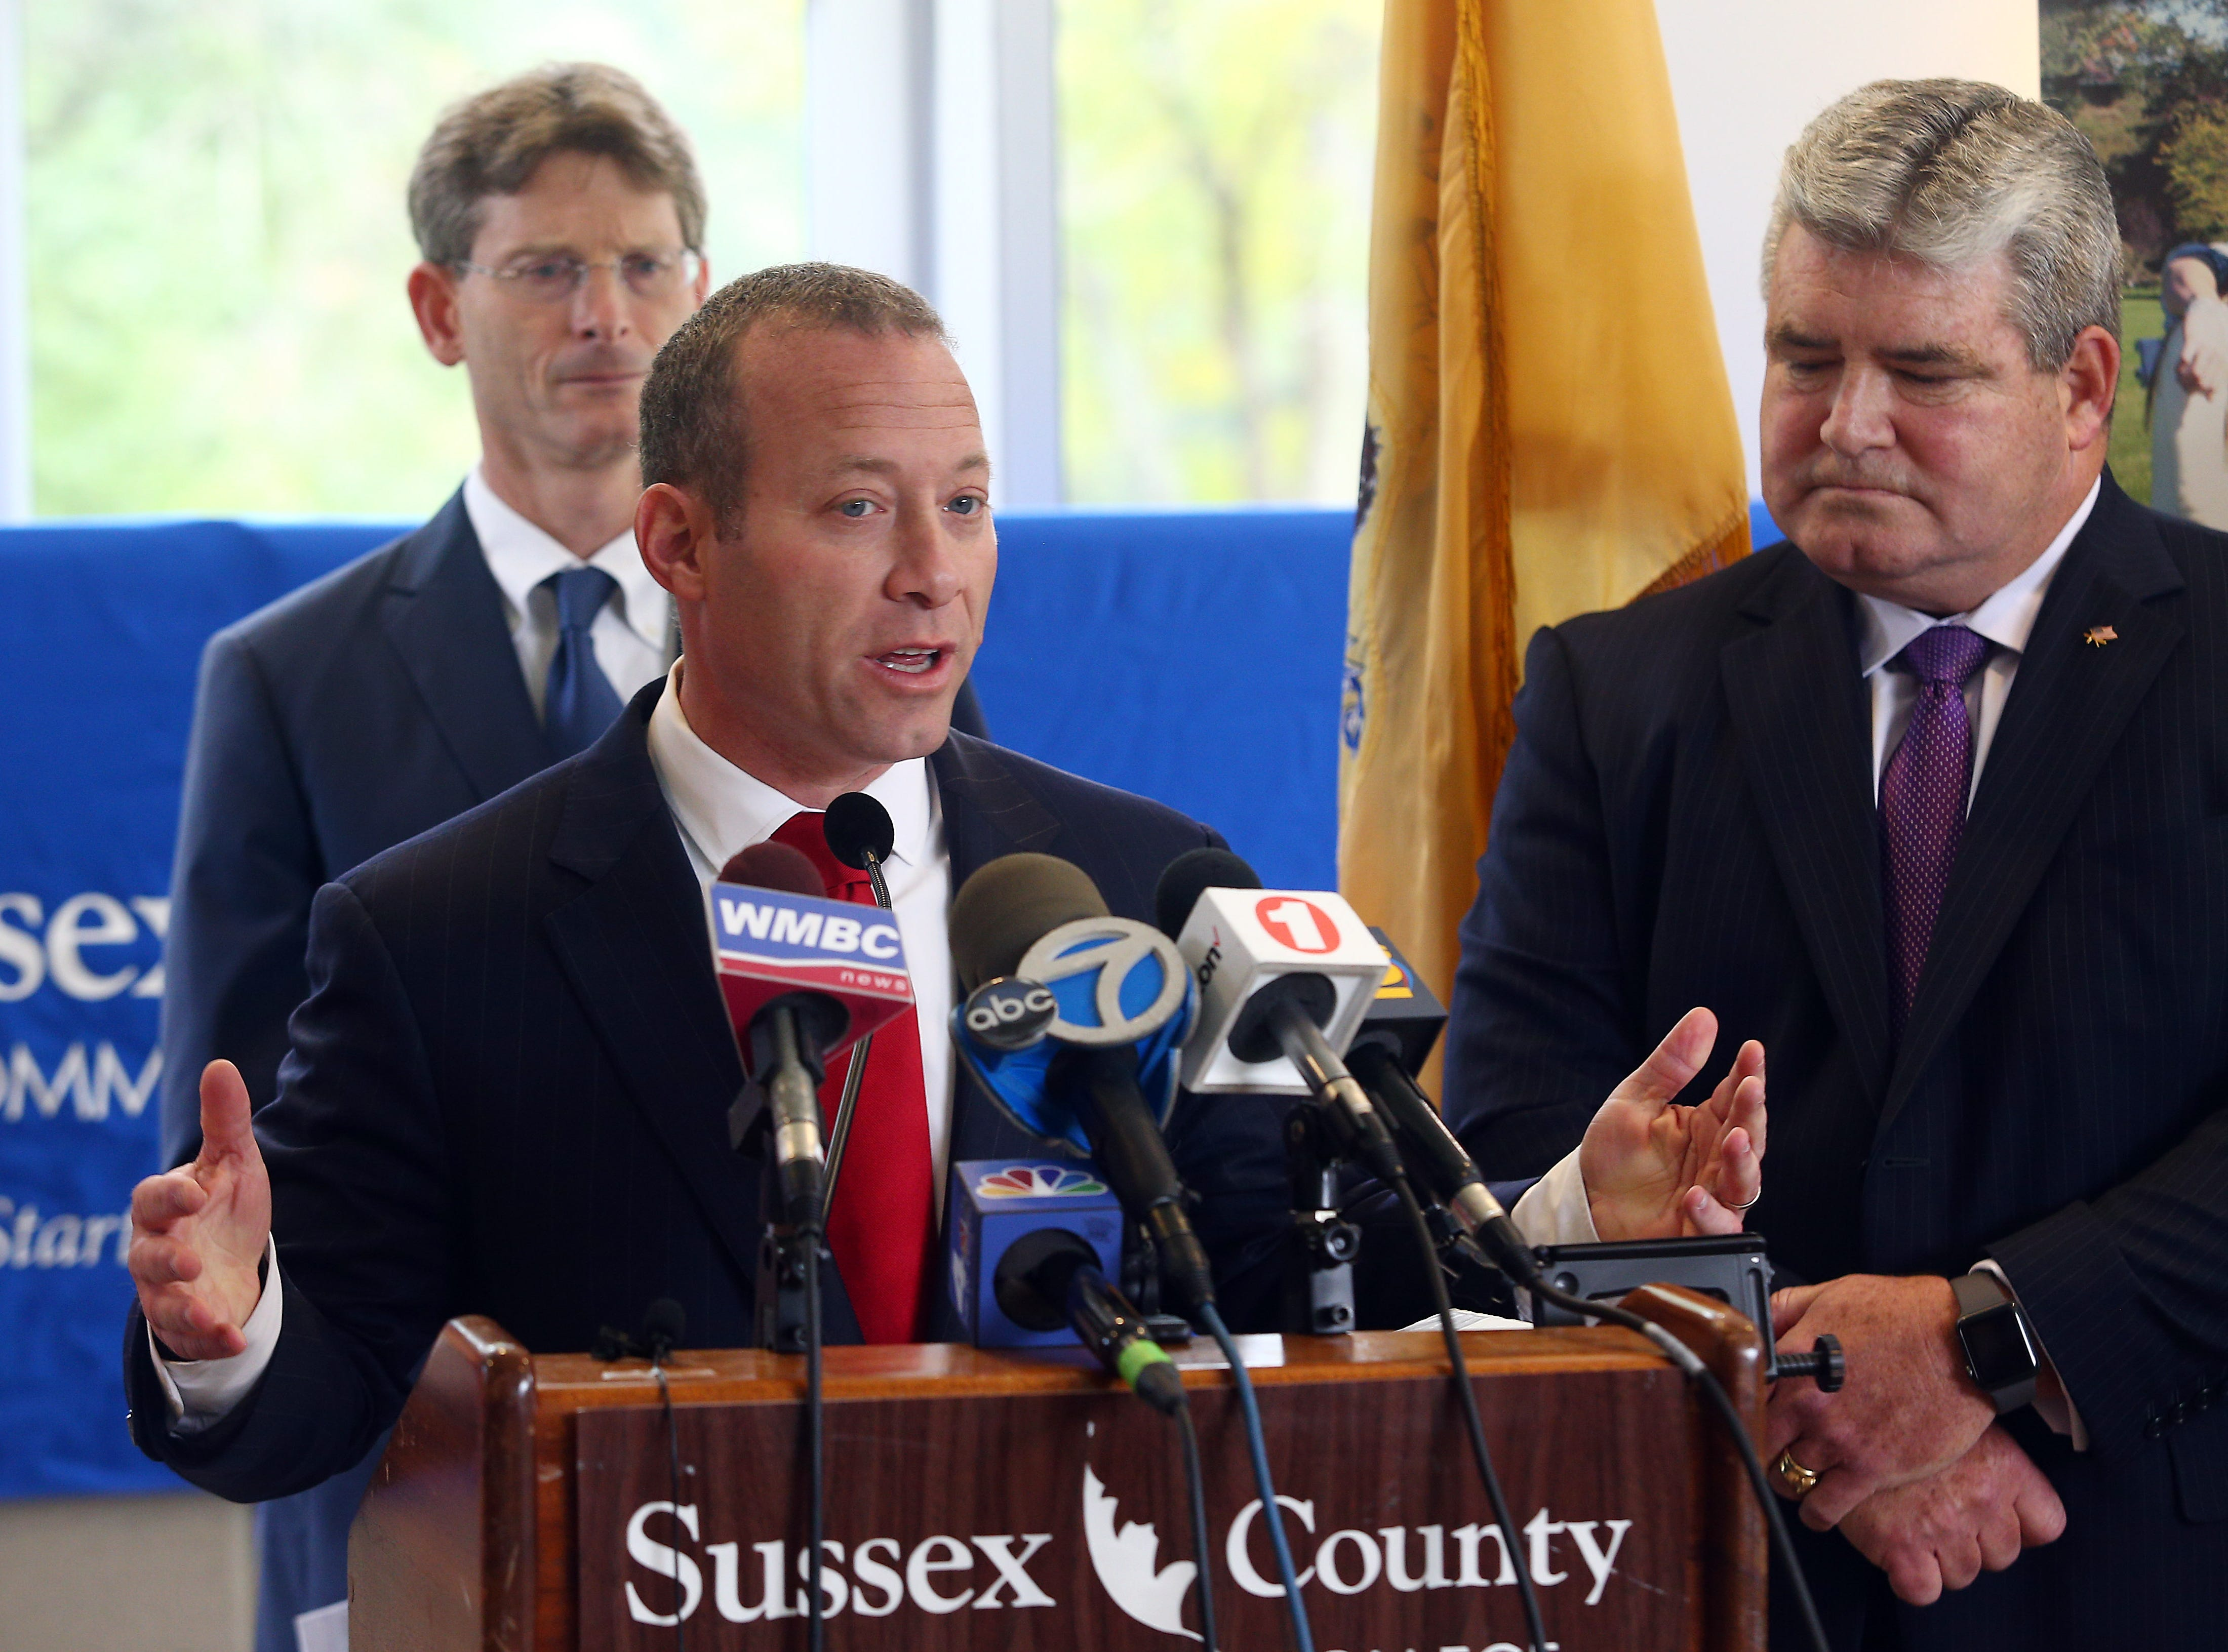 Congressman Josh Gottheimer speaks during the Stand United Against Hate rally at the Performing Arts Center of Sussex County Community College as Senator Steven Oroho looks on. Hampton Township residents Colleen Murch and Adam Stolarsky found vulgar graffiti sprayed on the road in front of their residence. This followed an incident last weekend in which a vandal spray-painted a swastika on their garage and a campaign sign for Rep. Josh Gottheimer. October 2, 2018, Newton, NJ